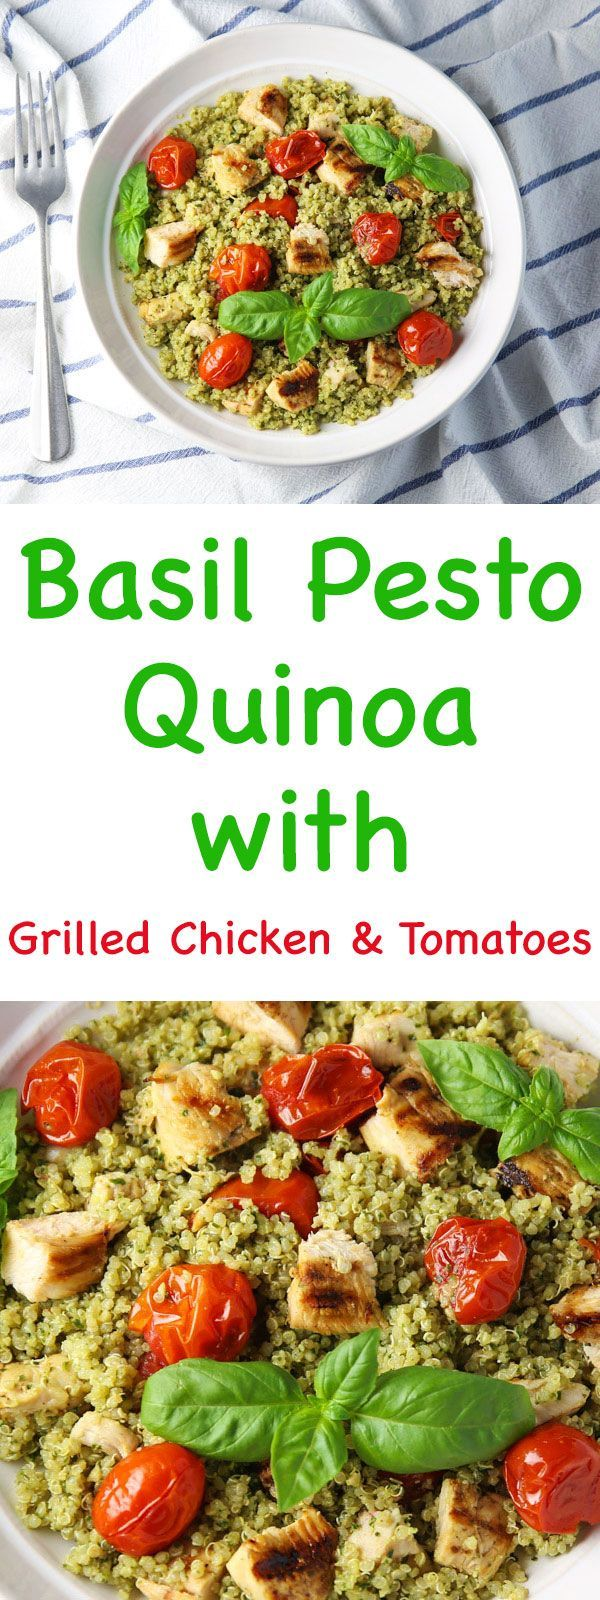 Photo of Basil Pesto Quinoa with Grilled Chicken and Tomatoes – Tastefulventure